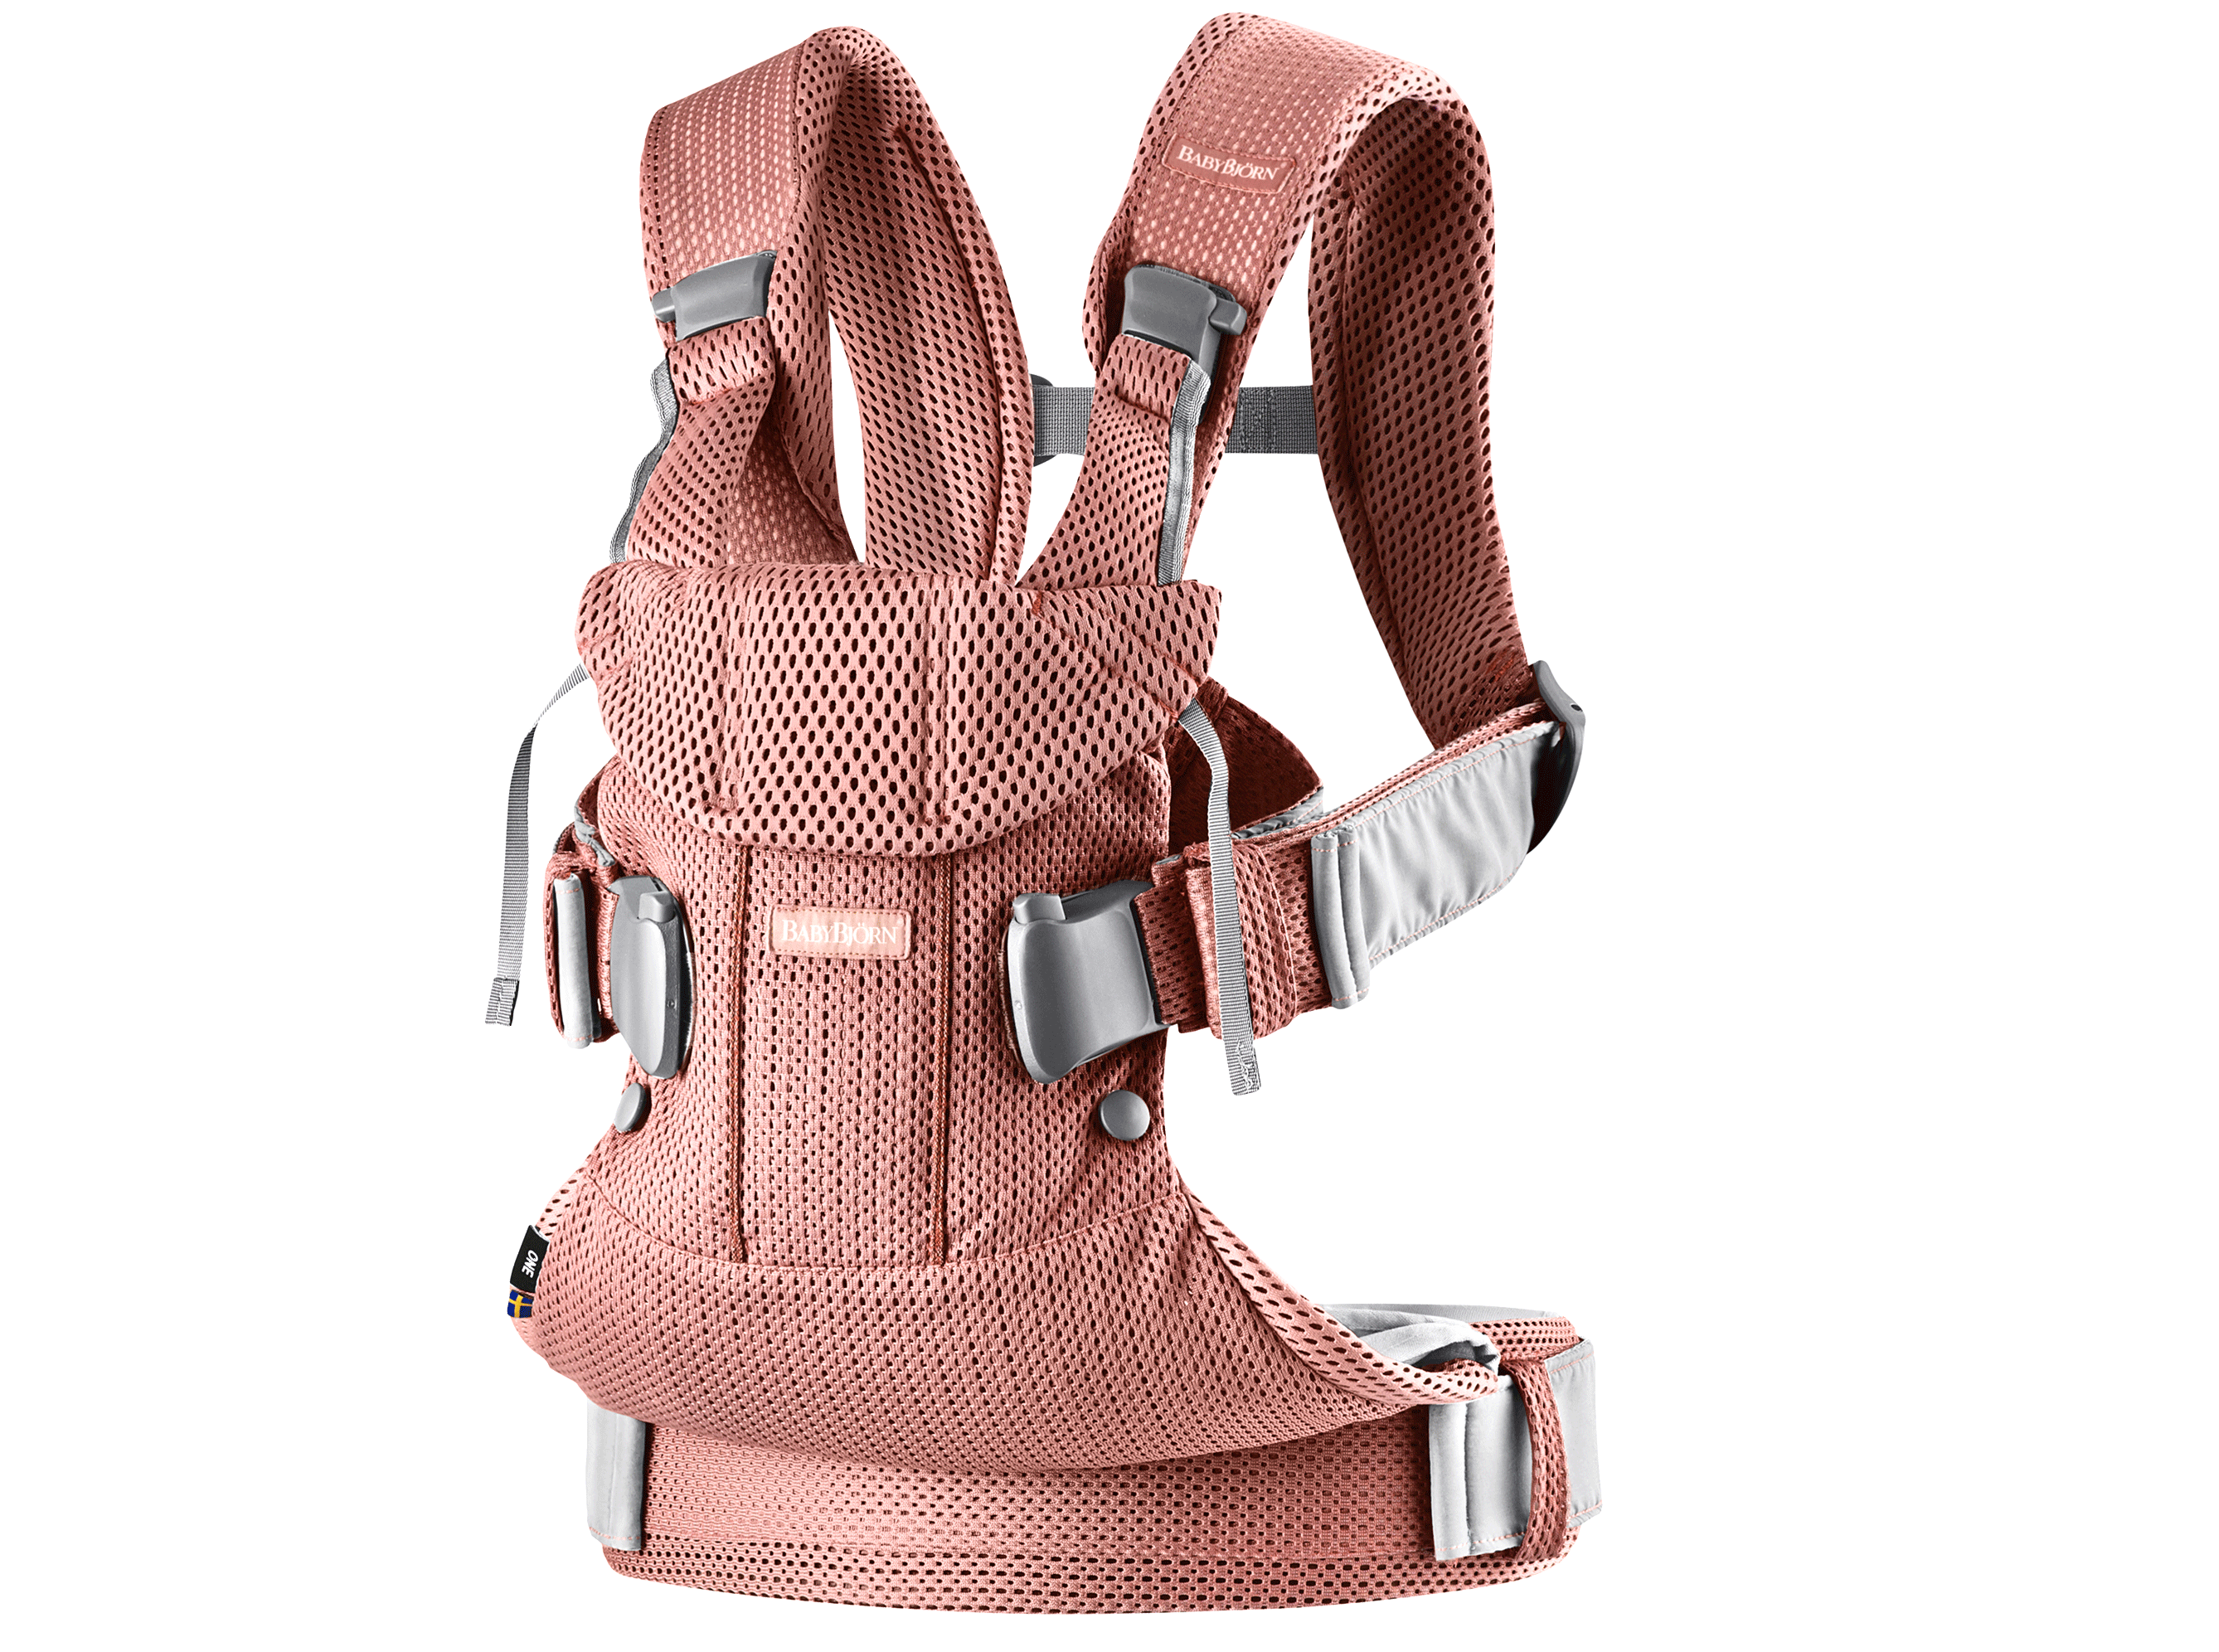 BABYBJÖRN Baby Carrier One Air, Vintage rose, Mesh – Baby Power Collection